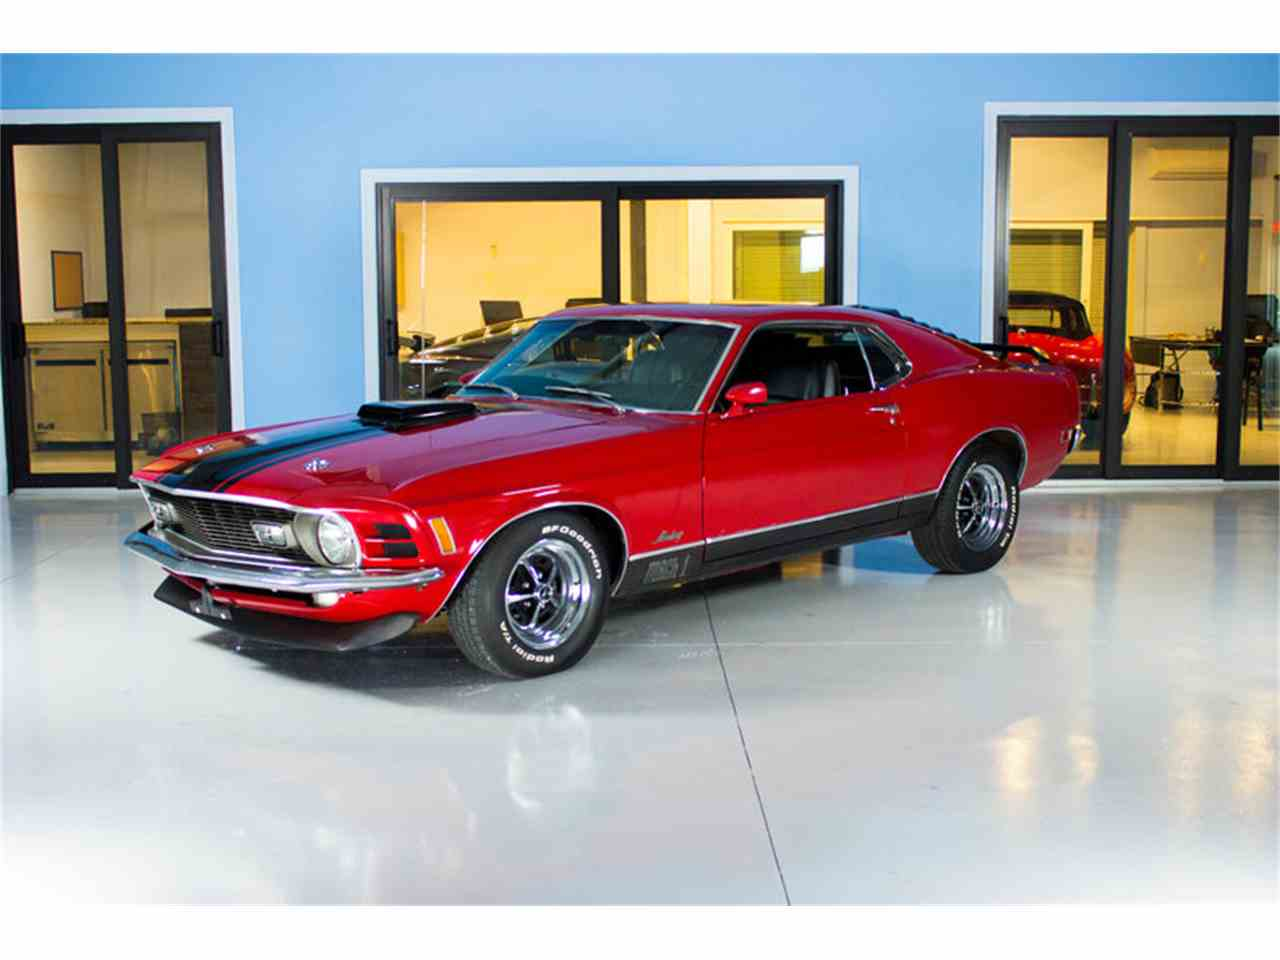 Large Picture of '70 Mustang Mach 1 located in Florida - $45,997.00 Offered by Skyway Classics - LVUC